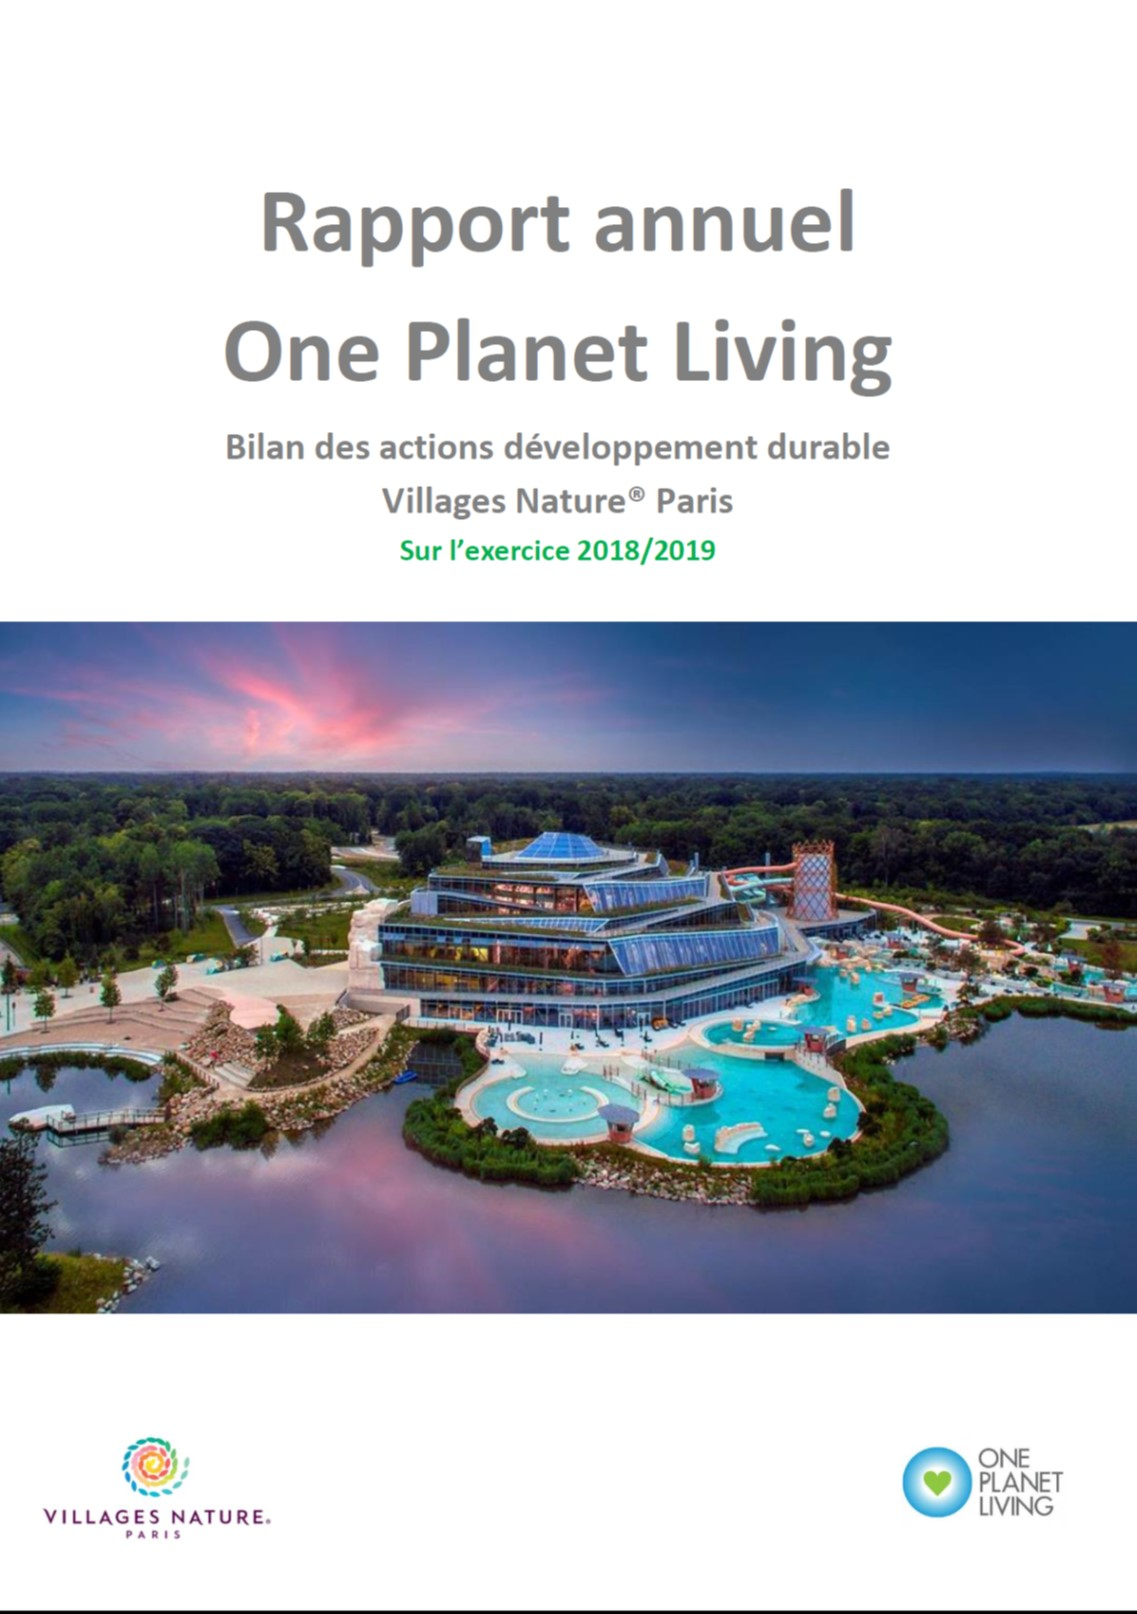 Rapport Annuel One Planet Living 2019